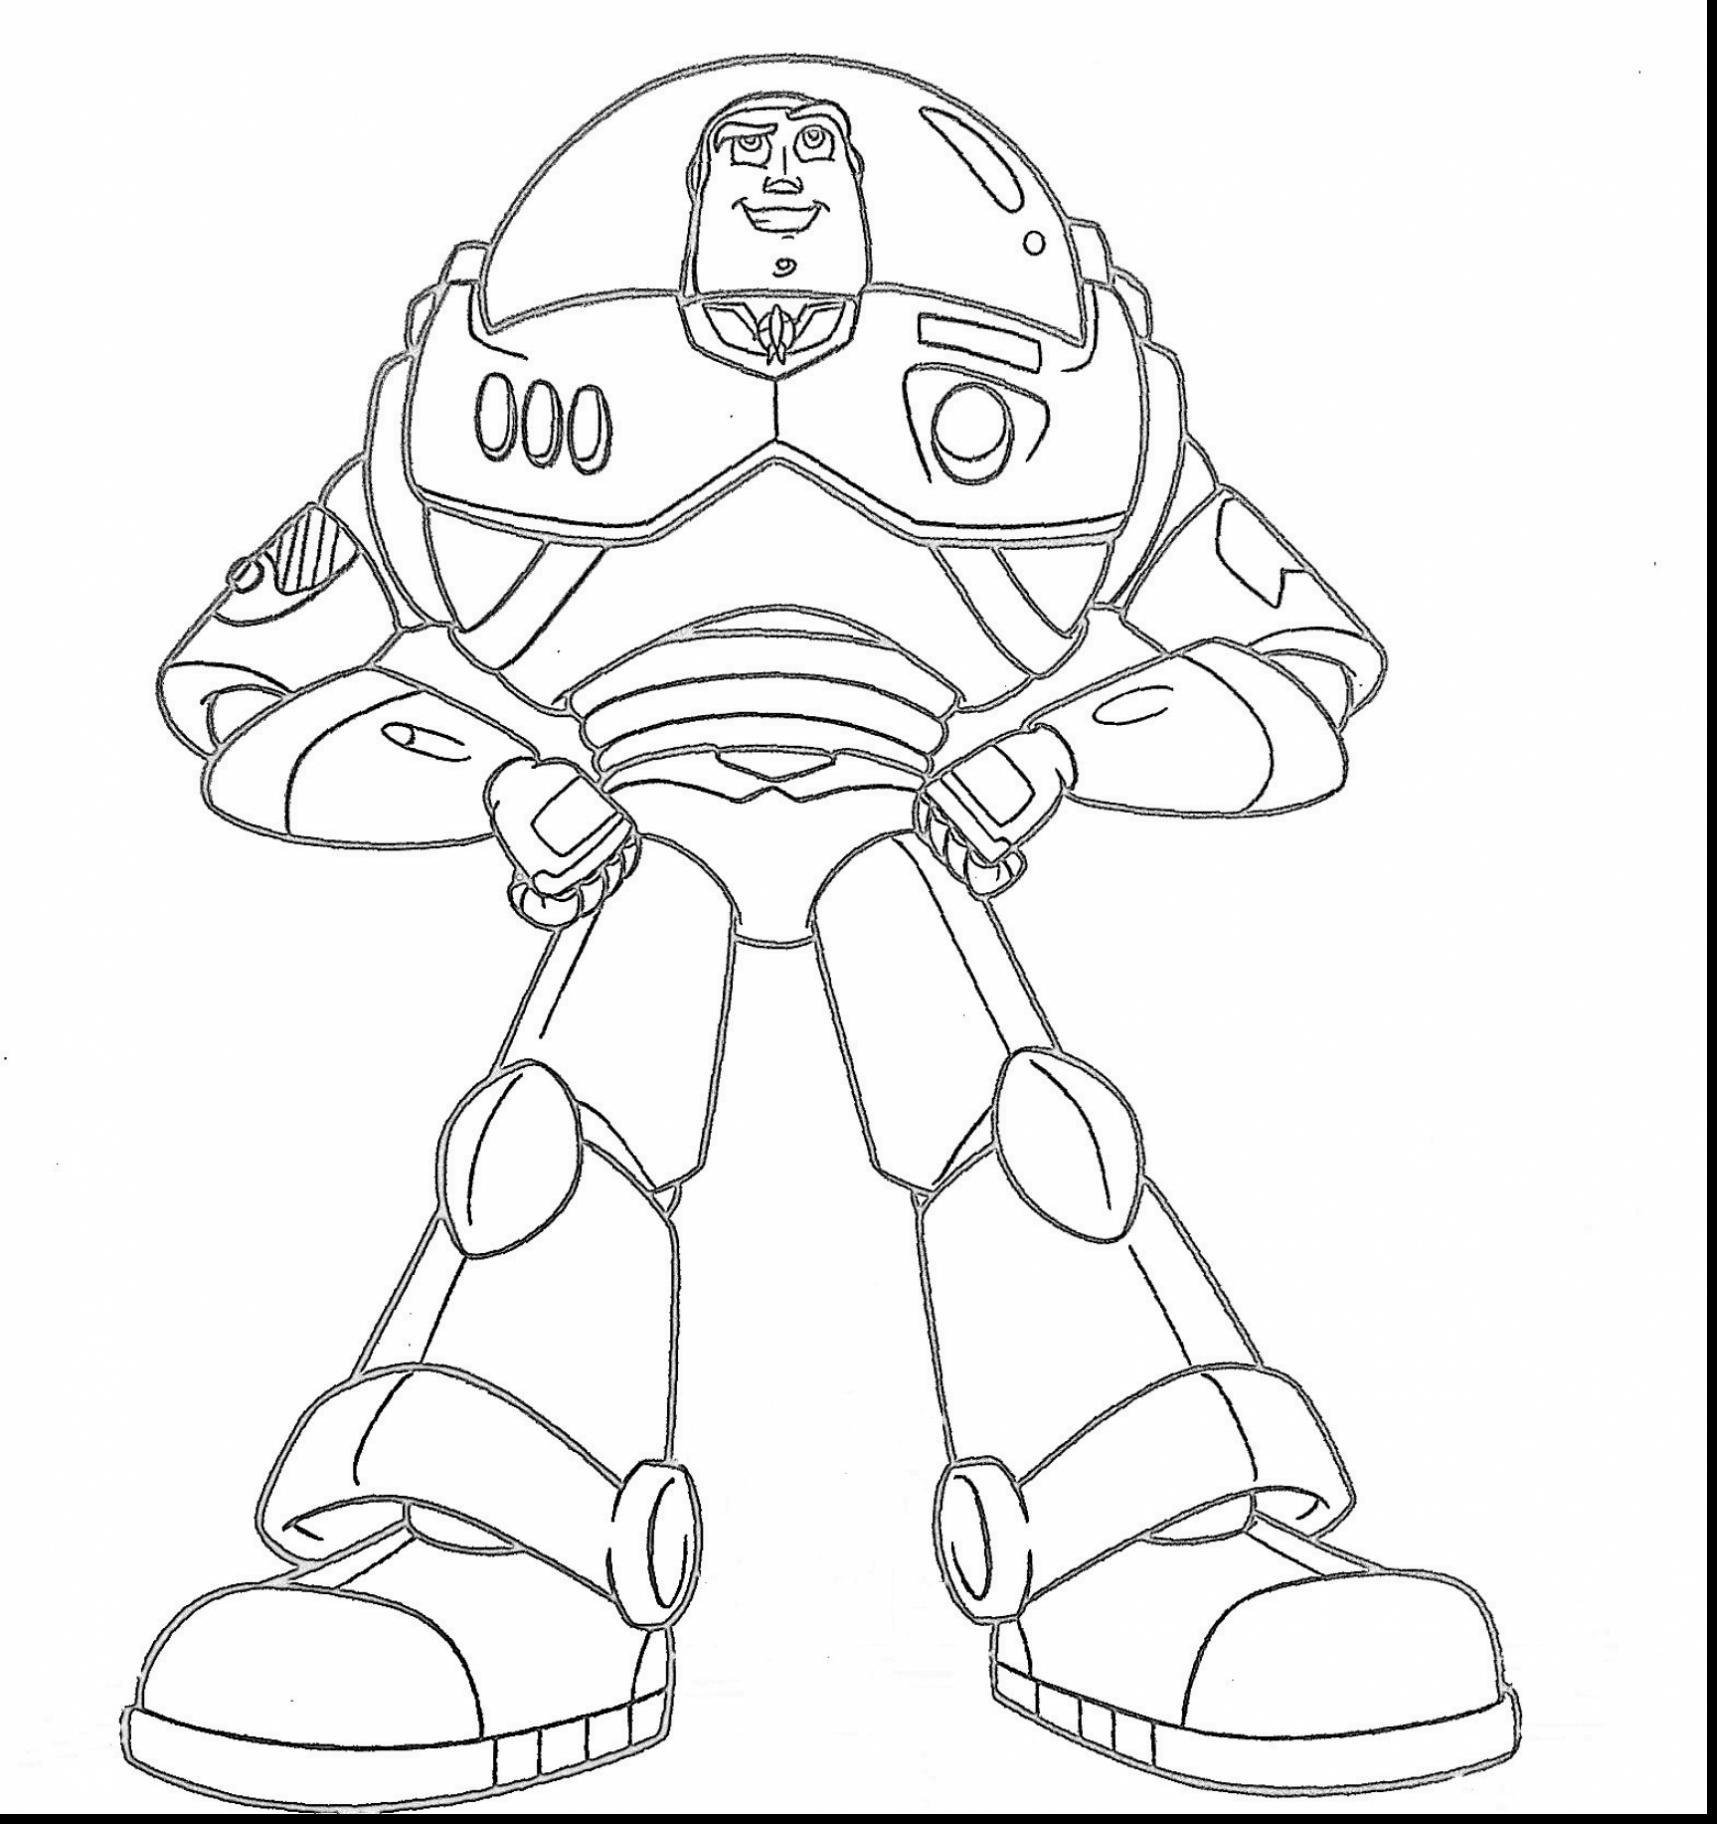 woody face coloring page woody coloring pages coloring pages for children face coloring page woody